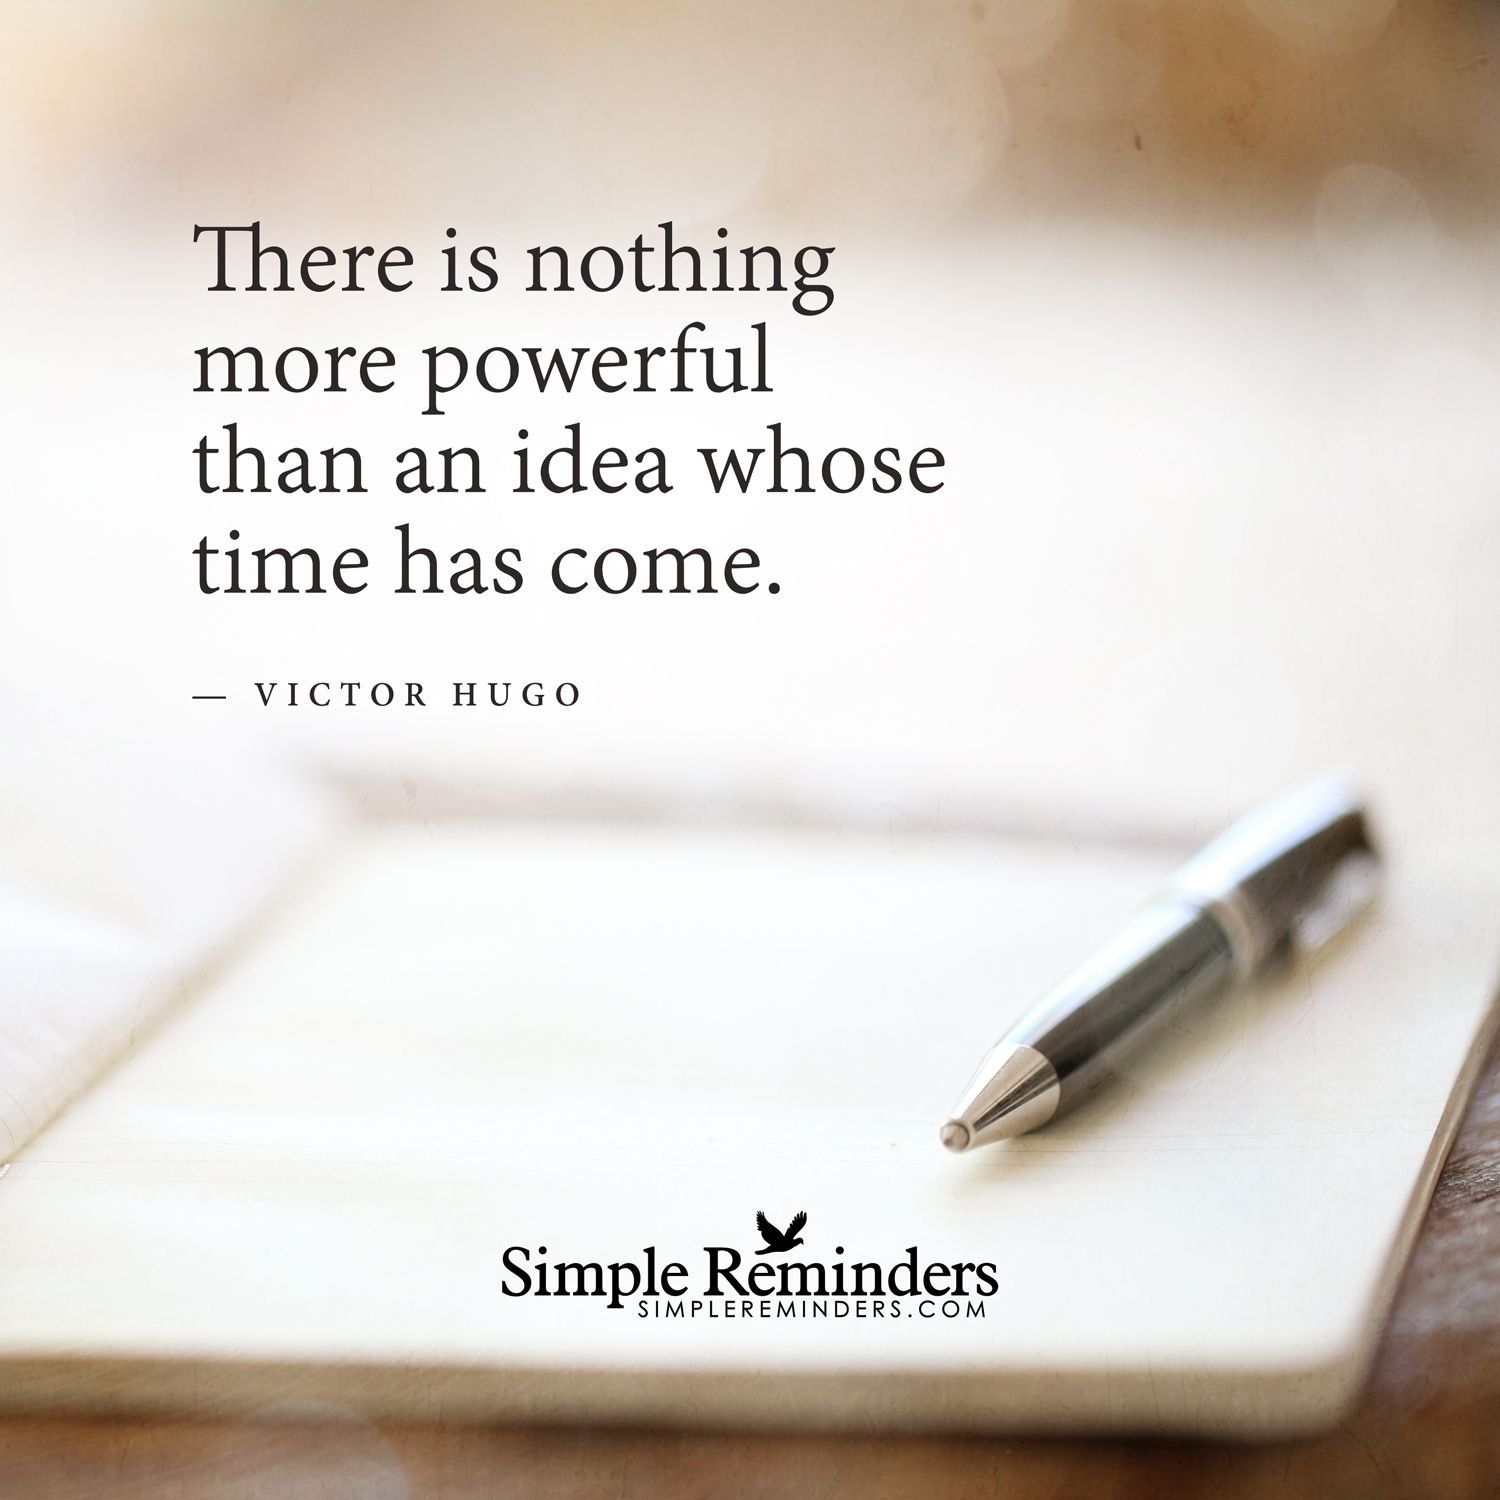 there is nothing more powerful than an idea whose time has come.""